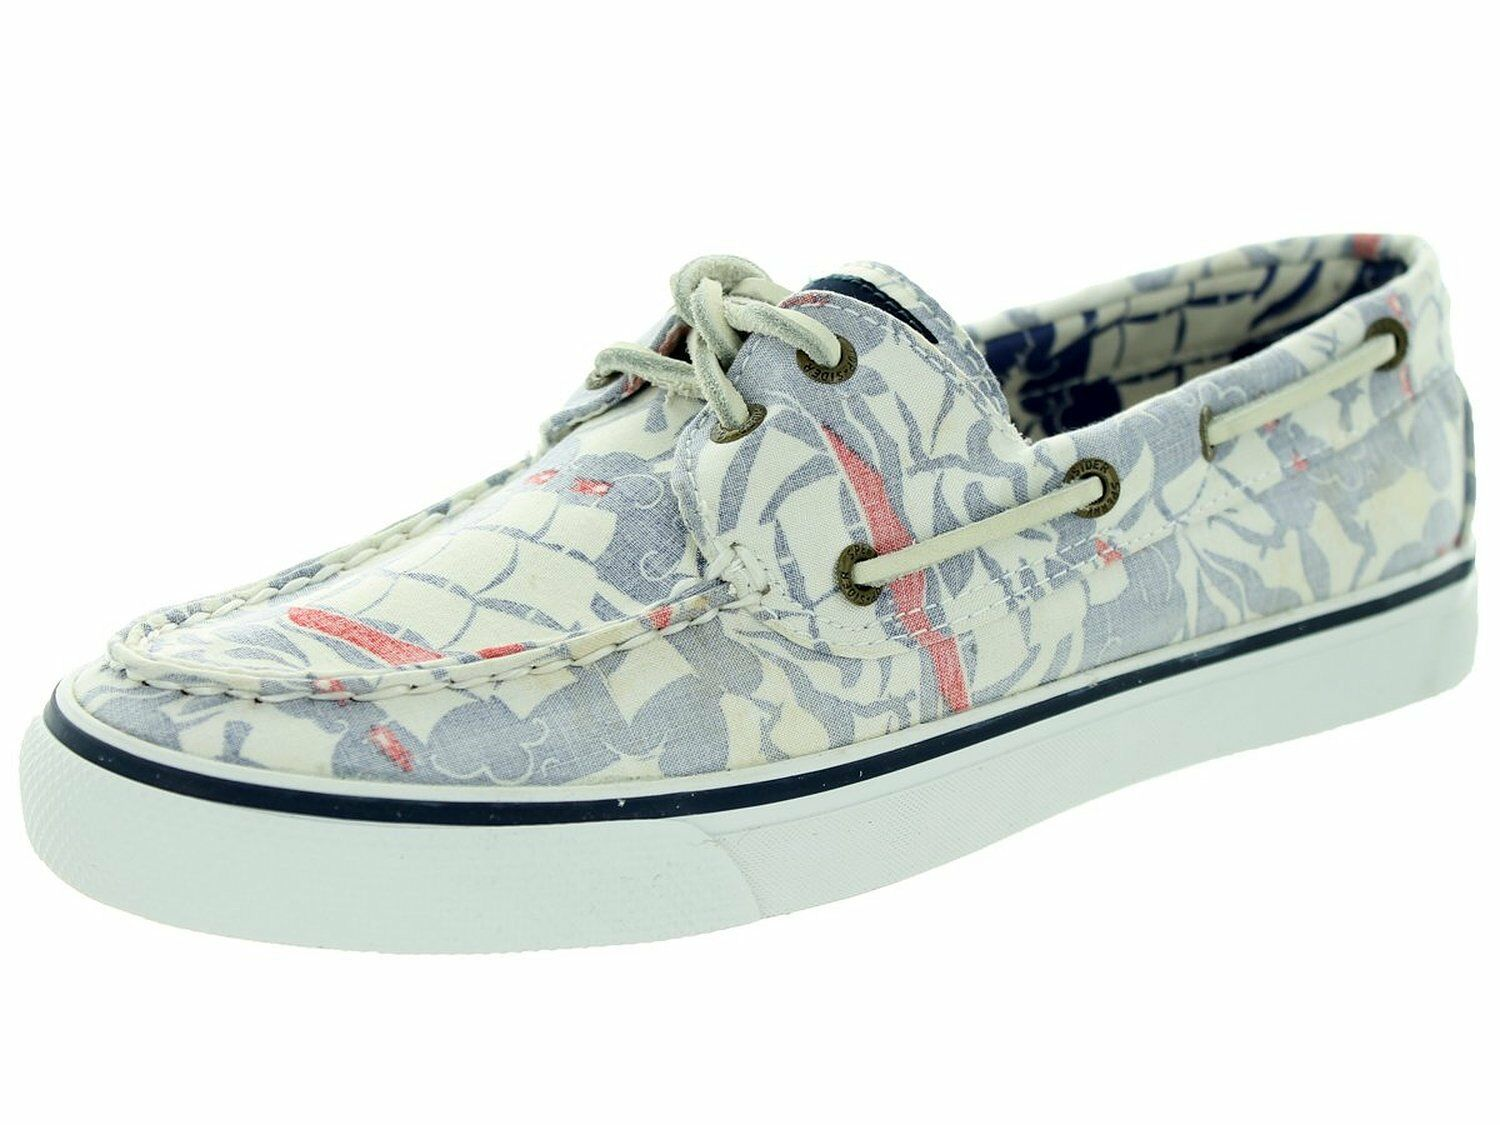 Damens Sperry Top-Sider Bahama Blau Ship 2-Eye Boat Schuhe, STS93634 Größe 6